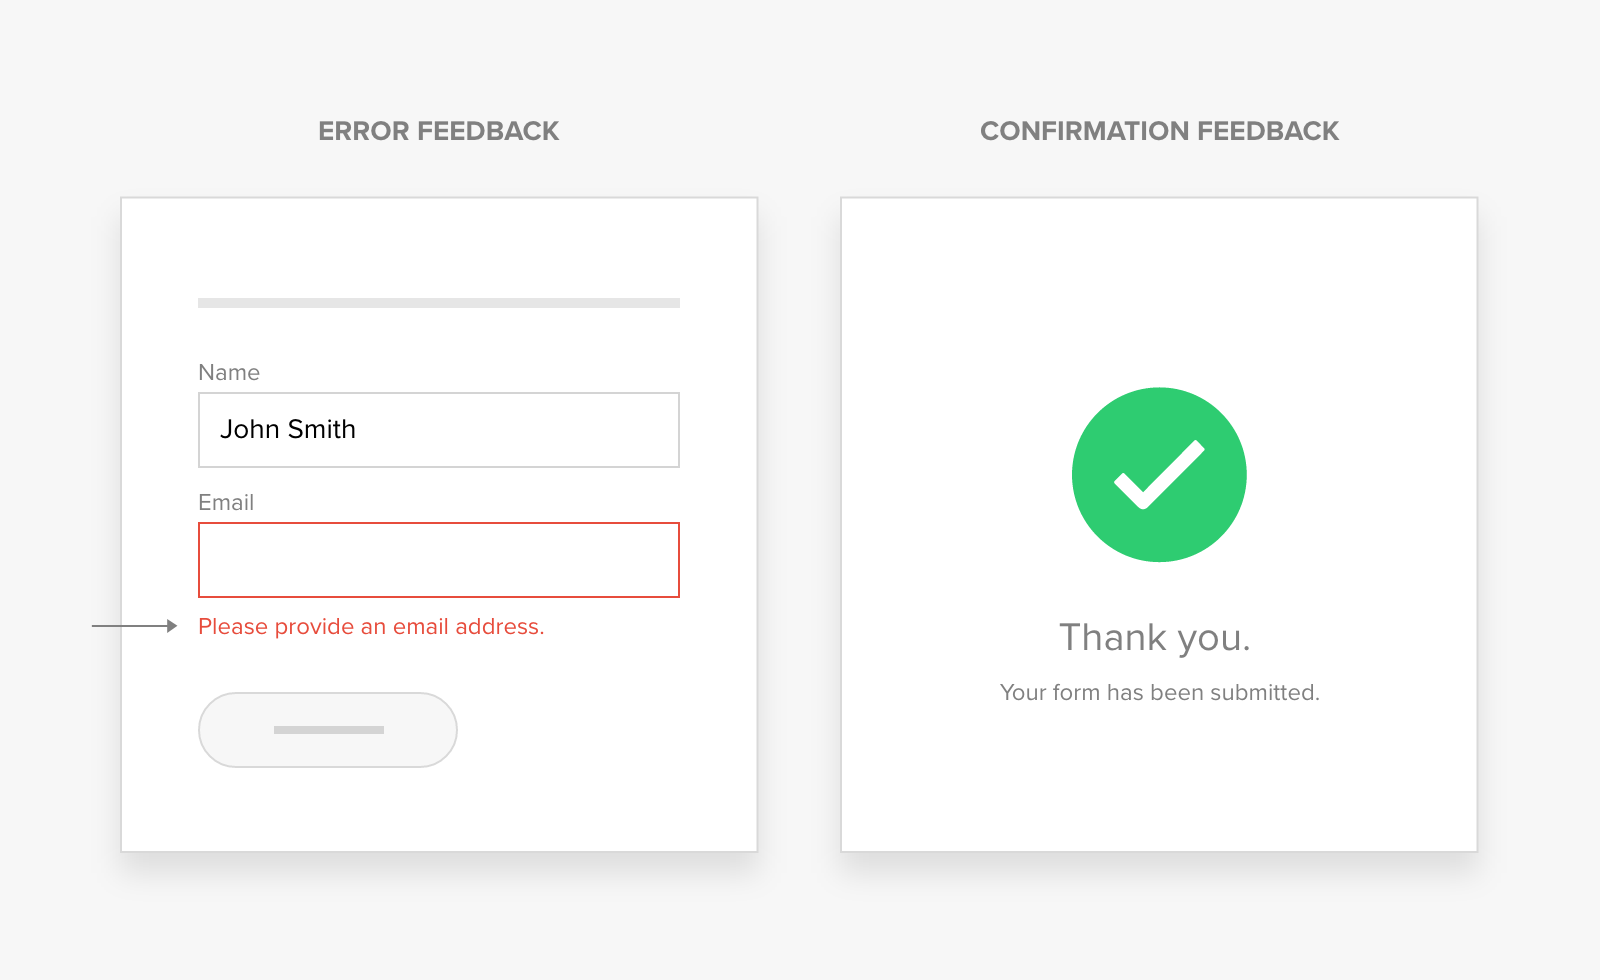 Get More Form Submissions With These Best Practices